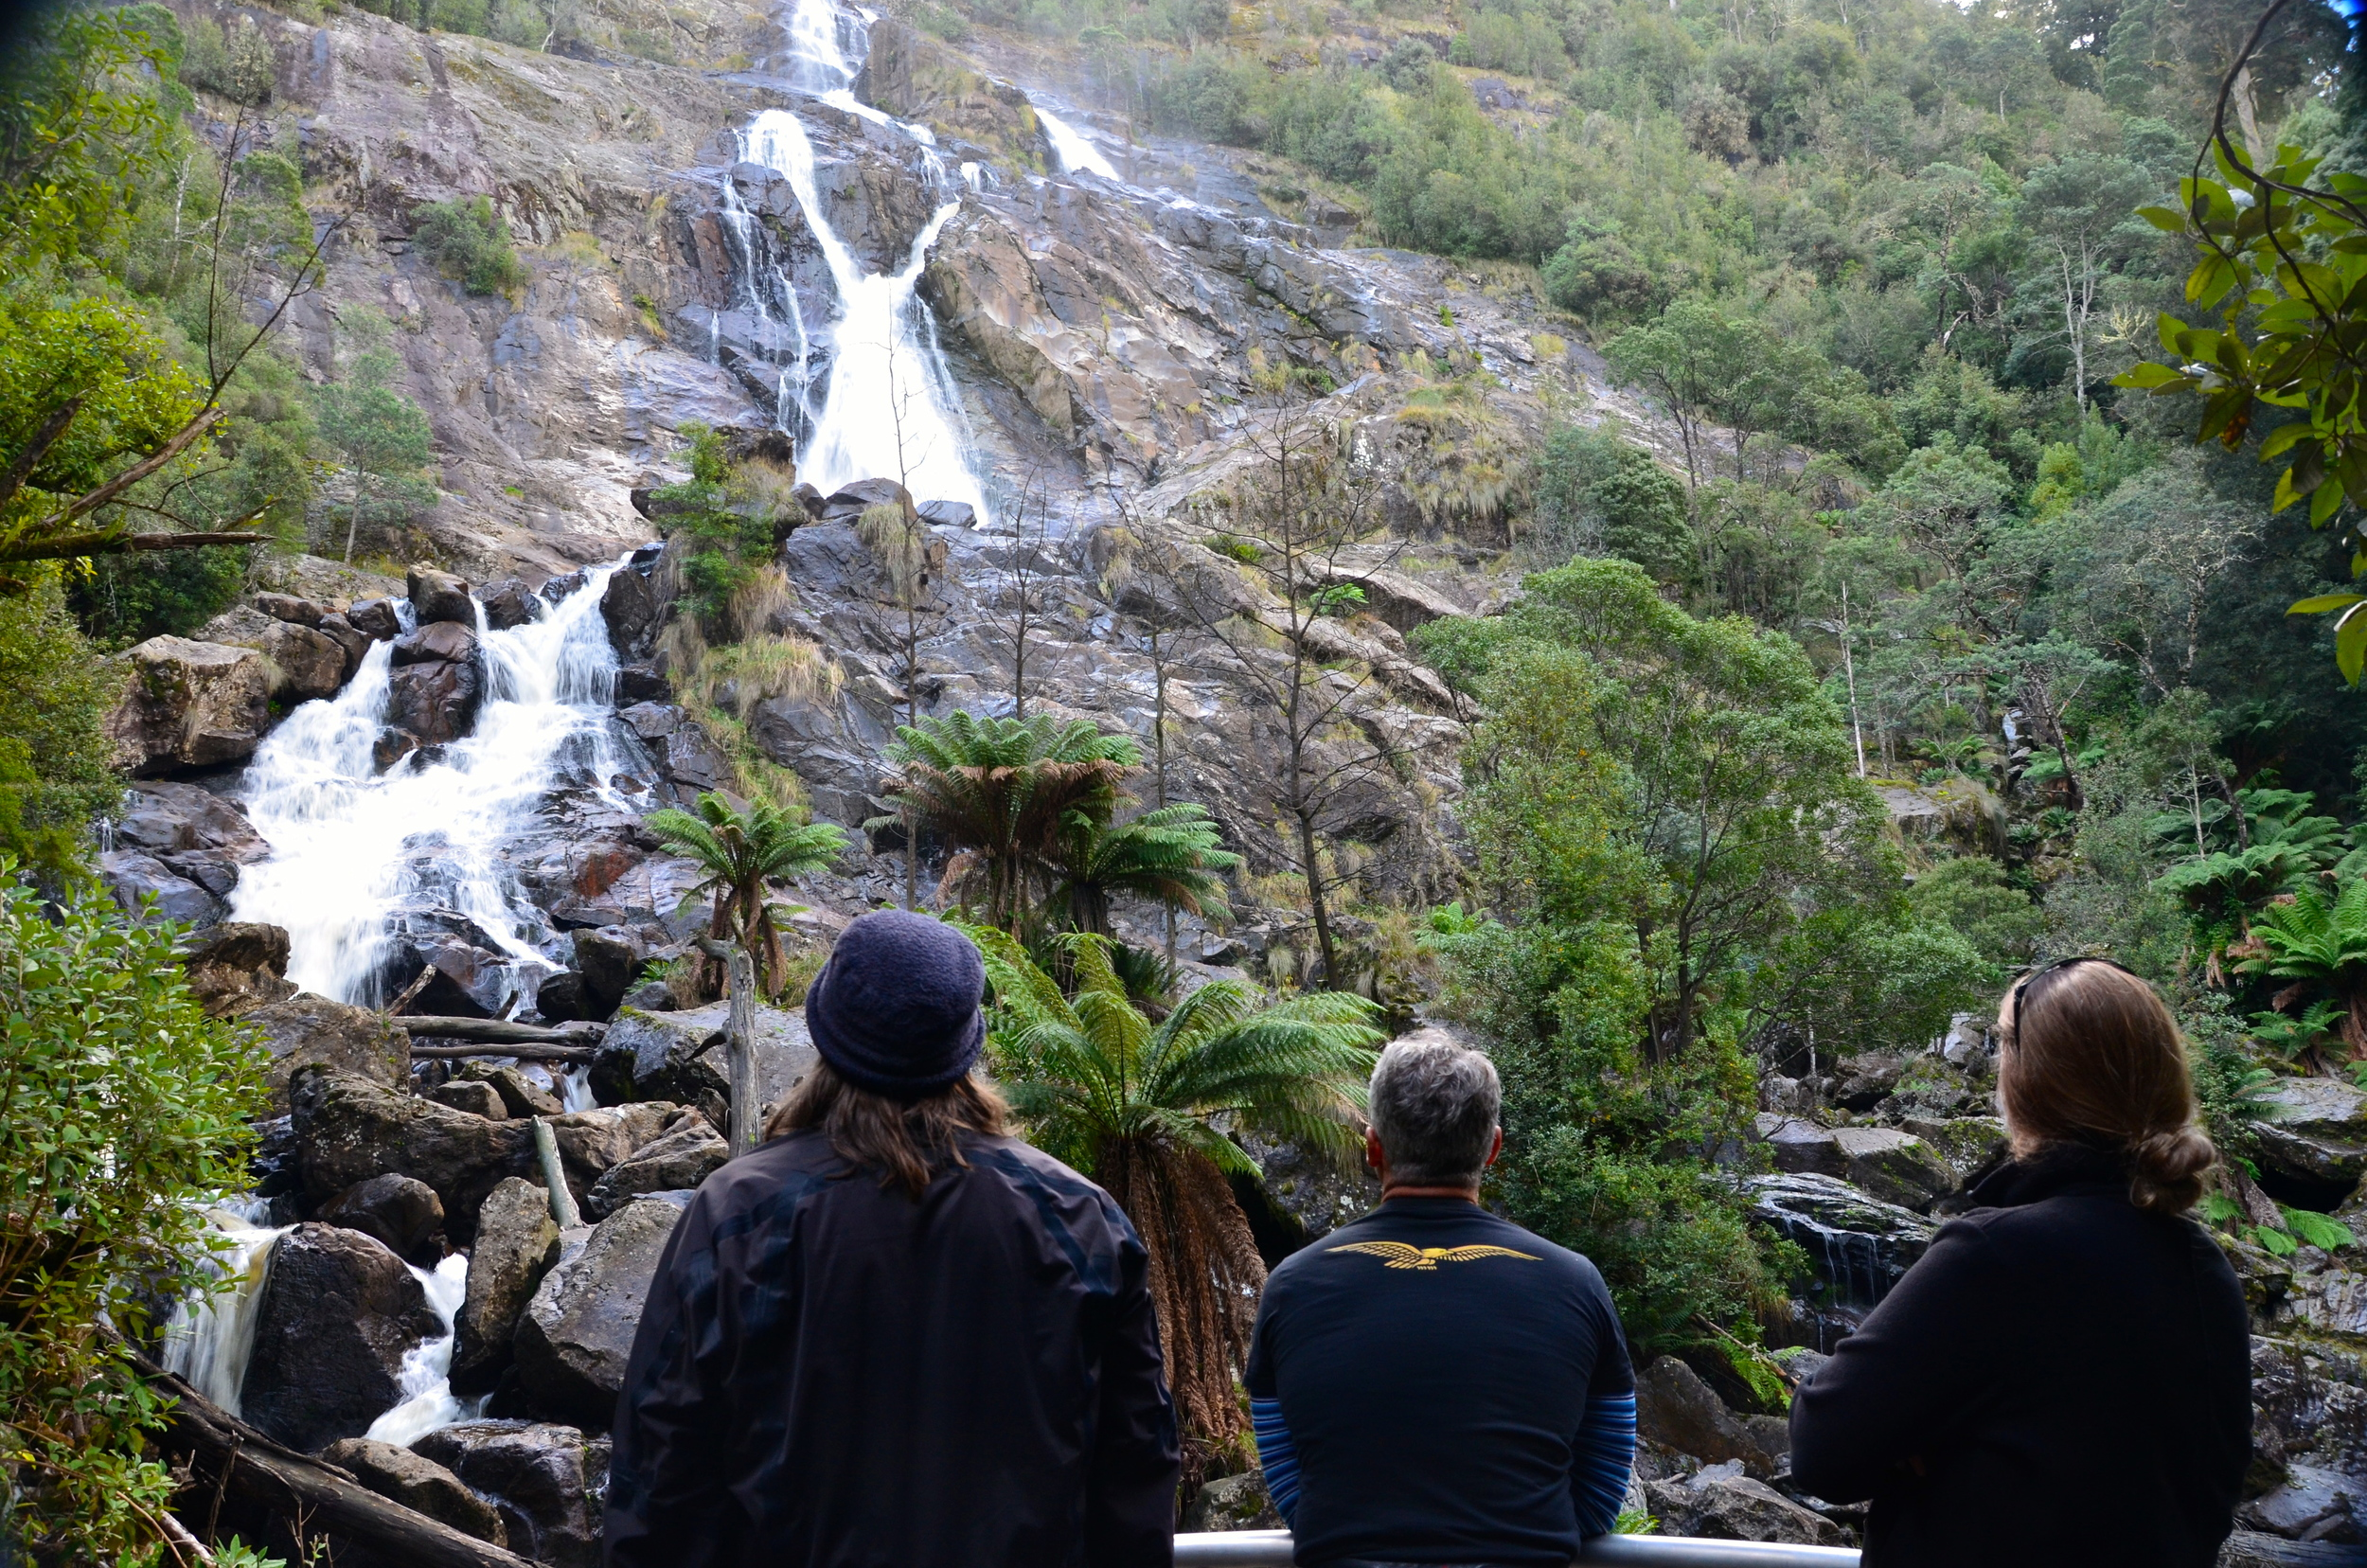 Kev, Brian and Chrissie checking out one of the tallest waterfalls in Tasmania, St. Columbia Falls!